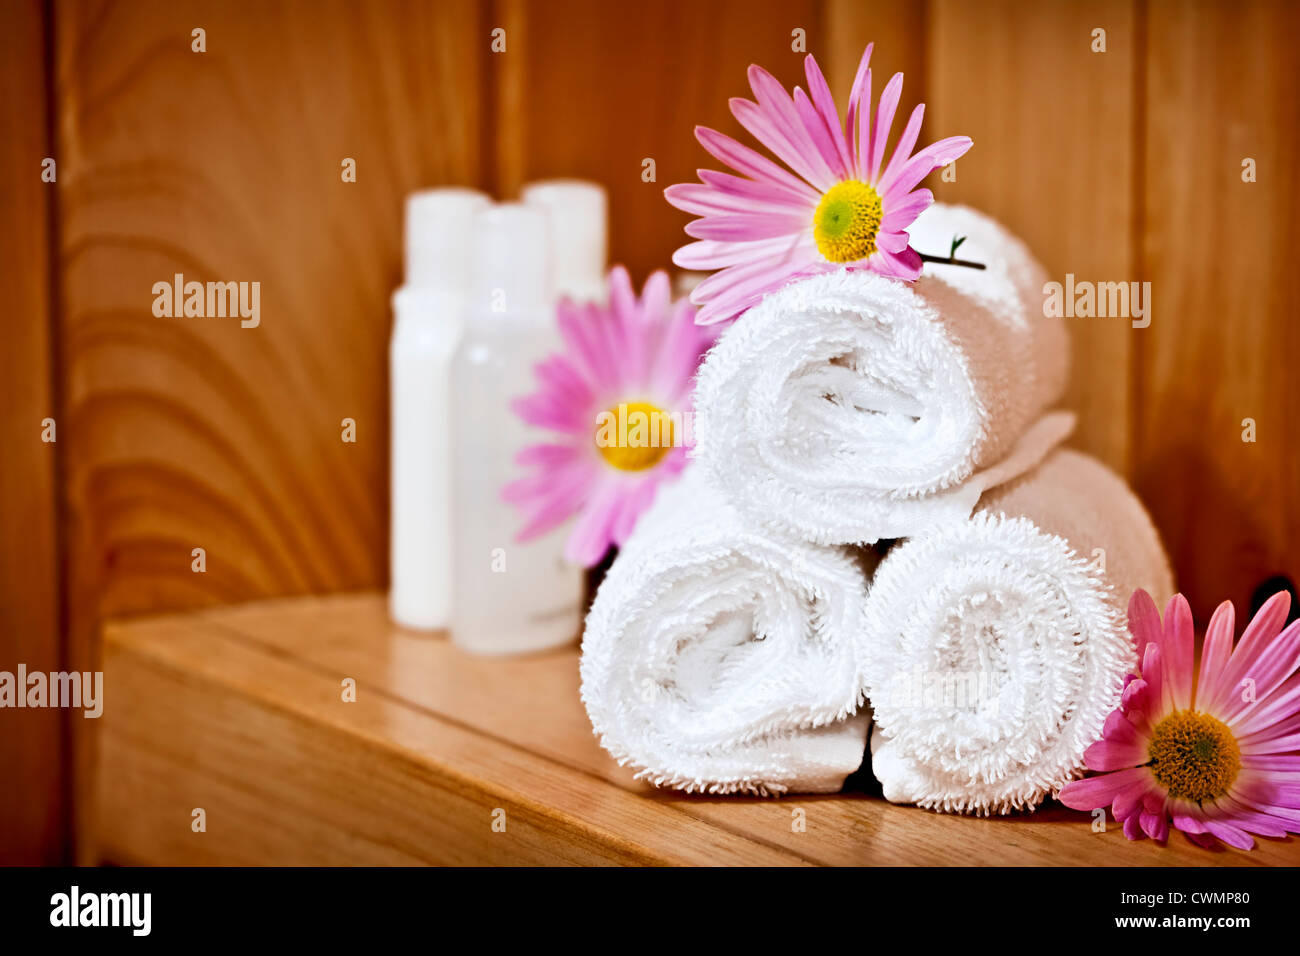 White rolled up spa towels with body care products - Stock Image